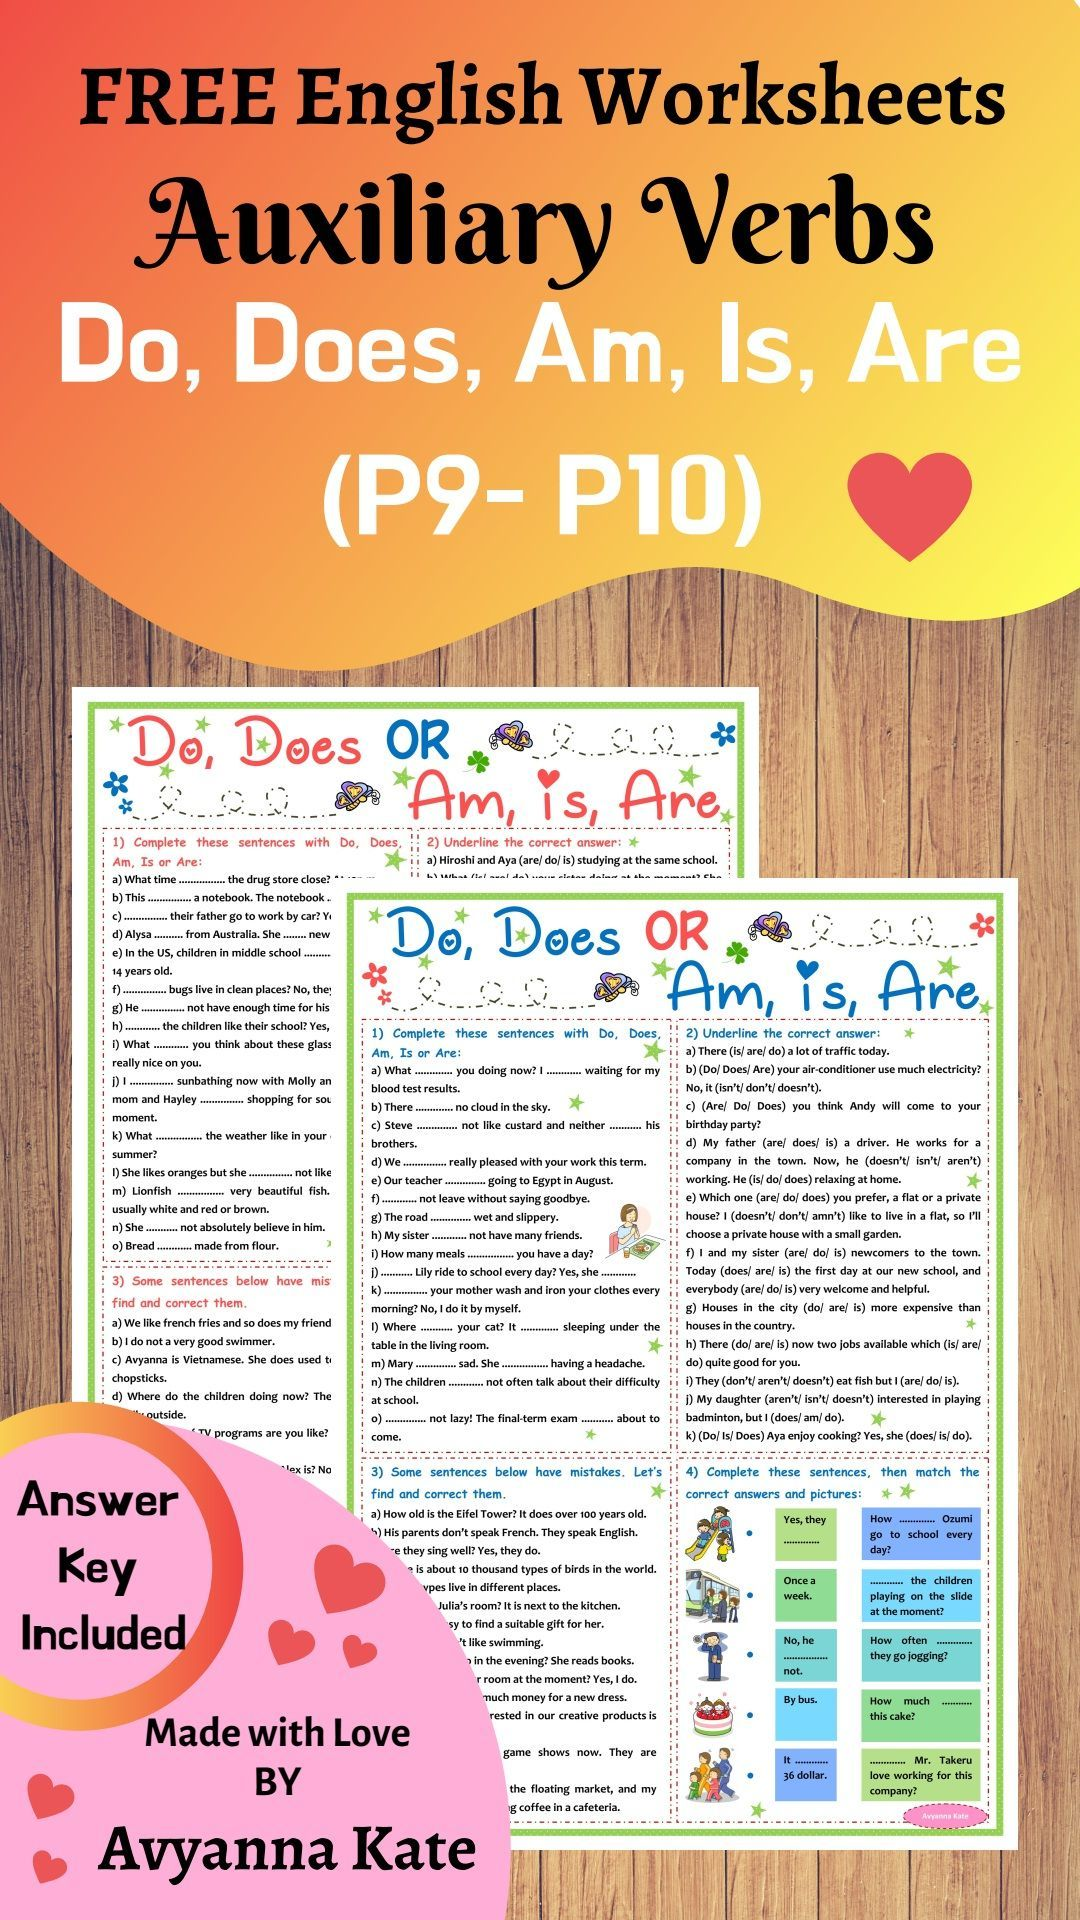 In These Worksheets P9 And P10 We Will Practice And